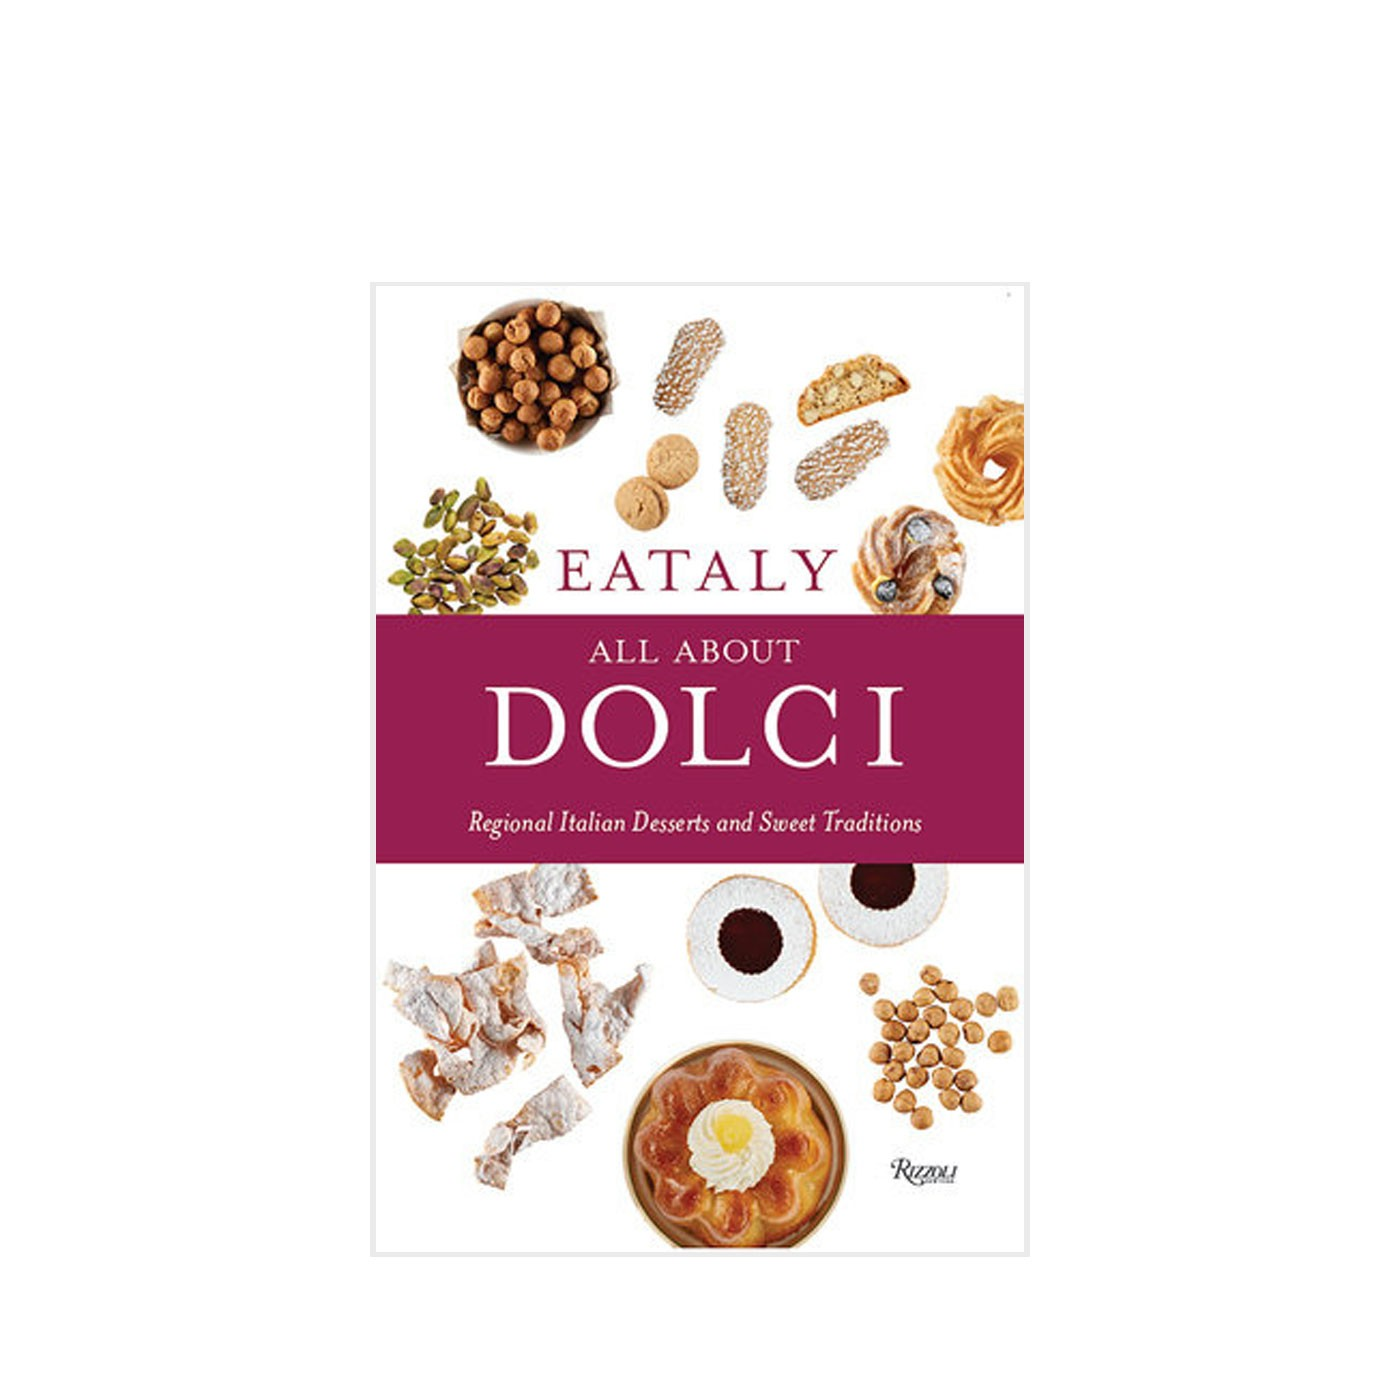 All About Dolci